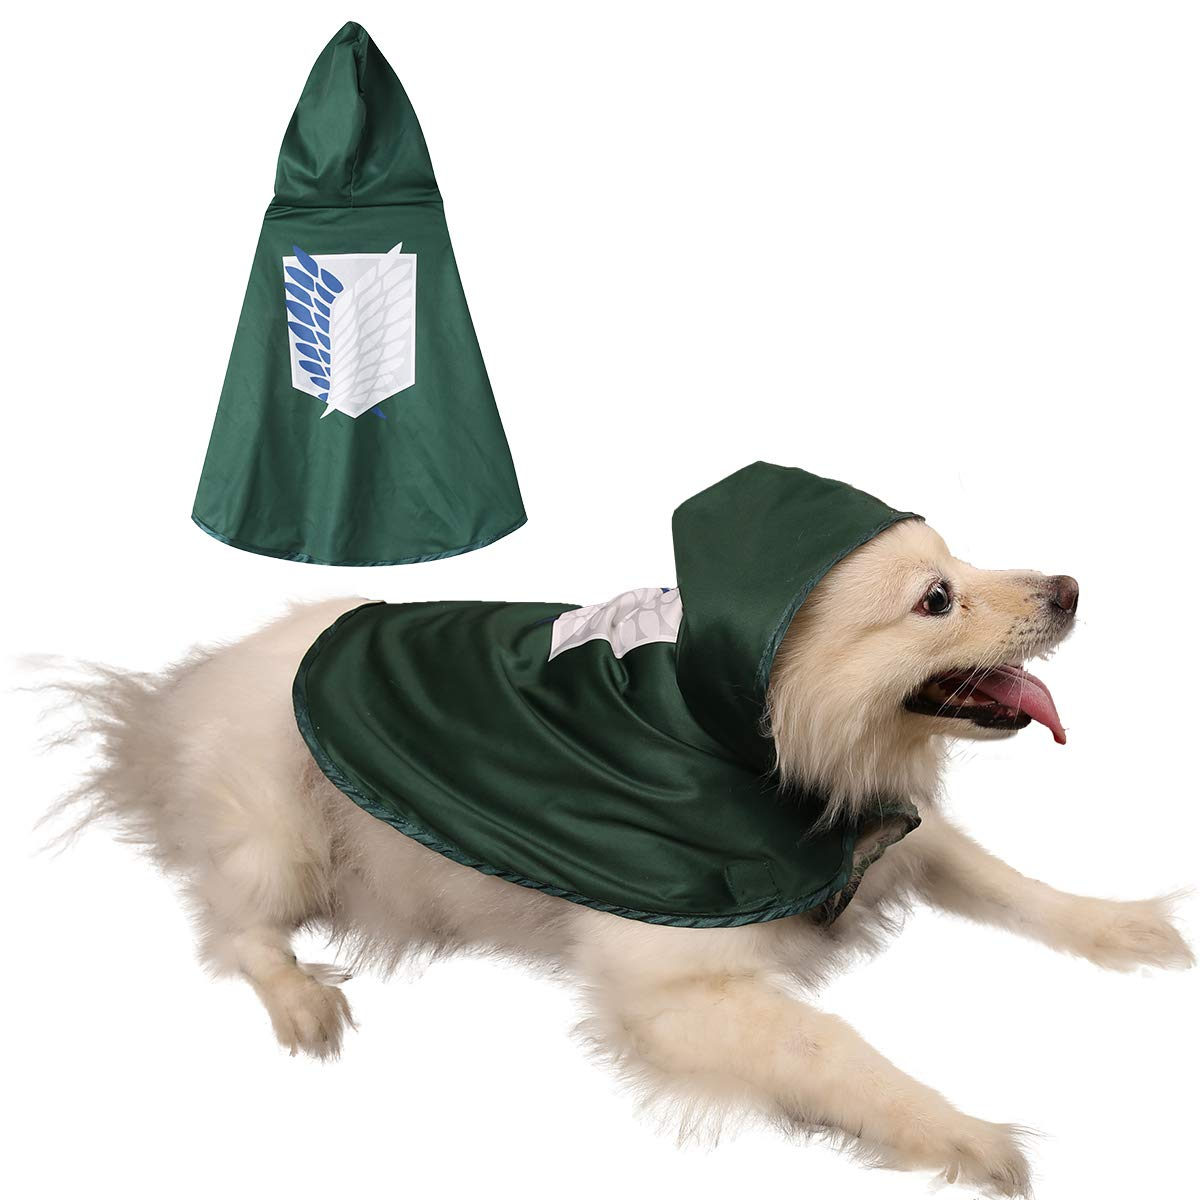 Impoosy Pet Dog Cartoon Christmas Costume Cat Puppy Anime Xmas Cloak Cute  Cosplay Cape for Small to Large Dogs Cats Pets Accessories